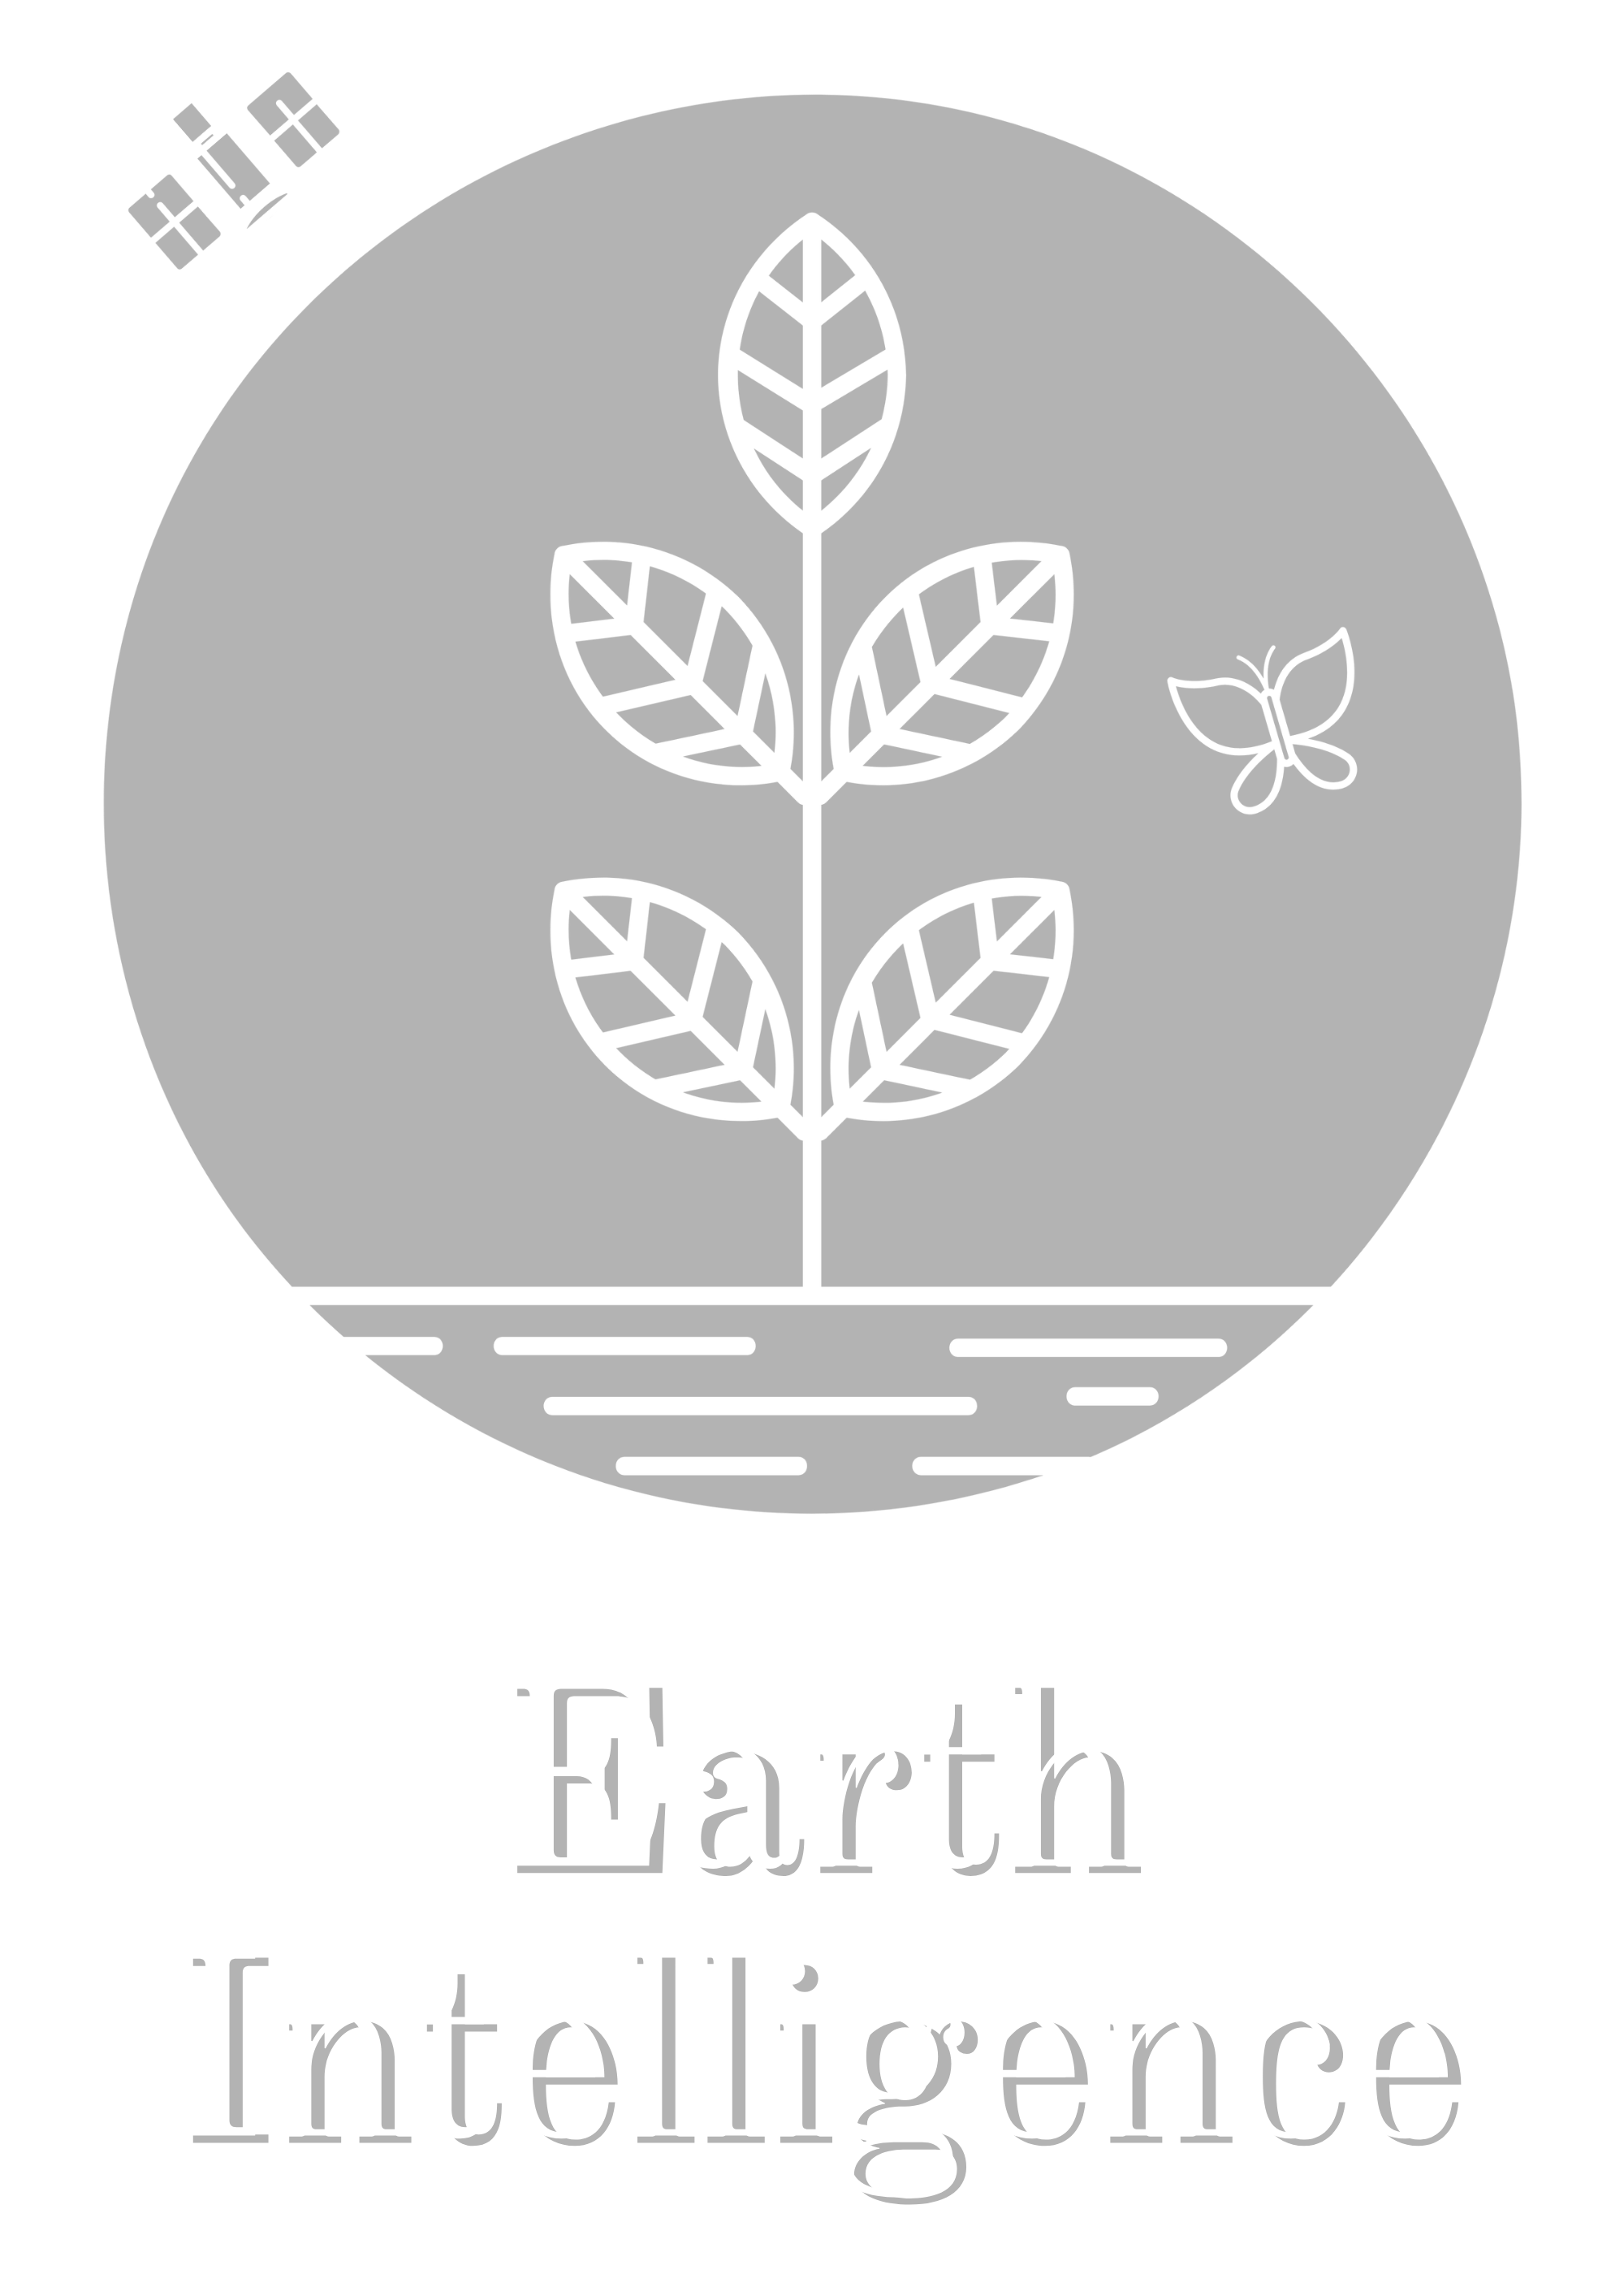 Earth Intelligence